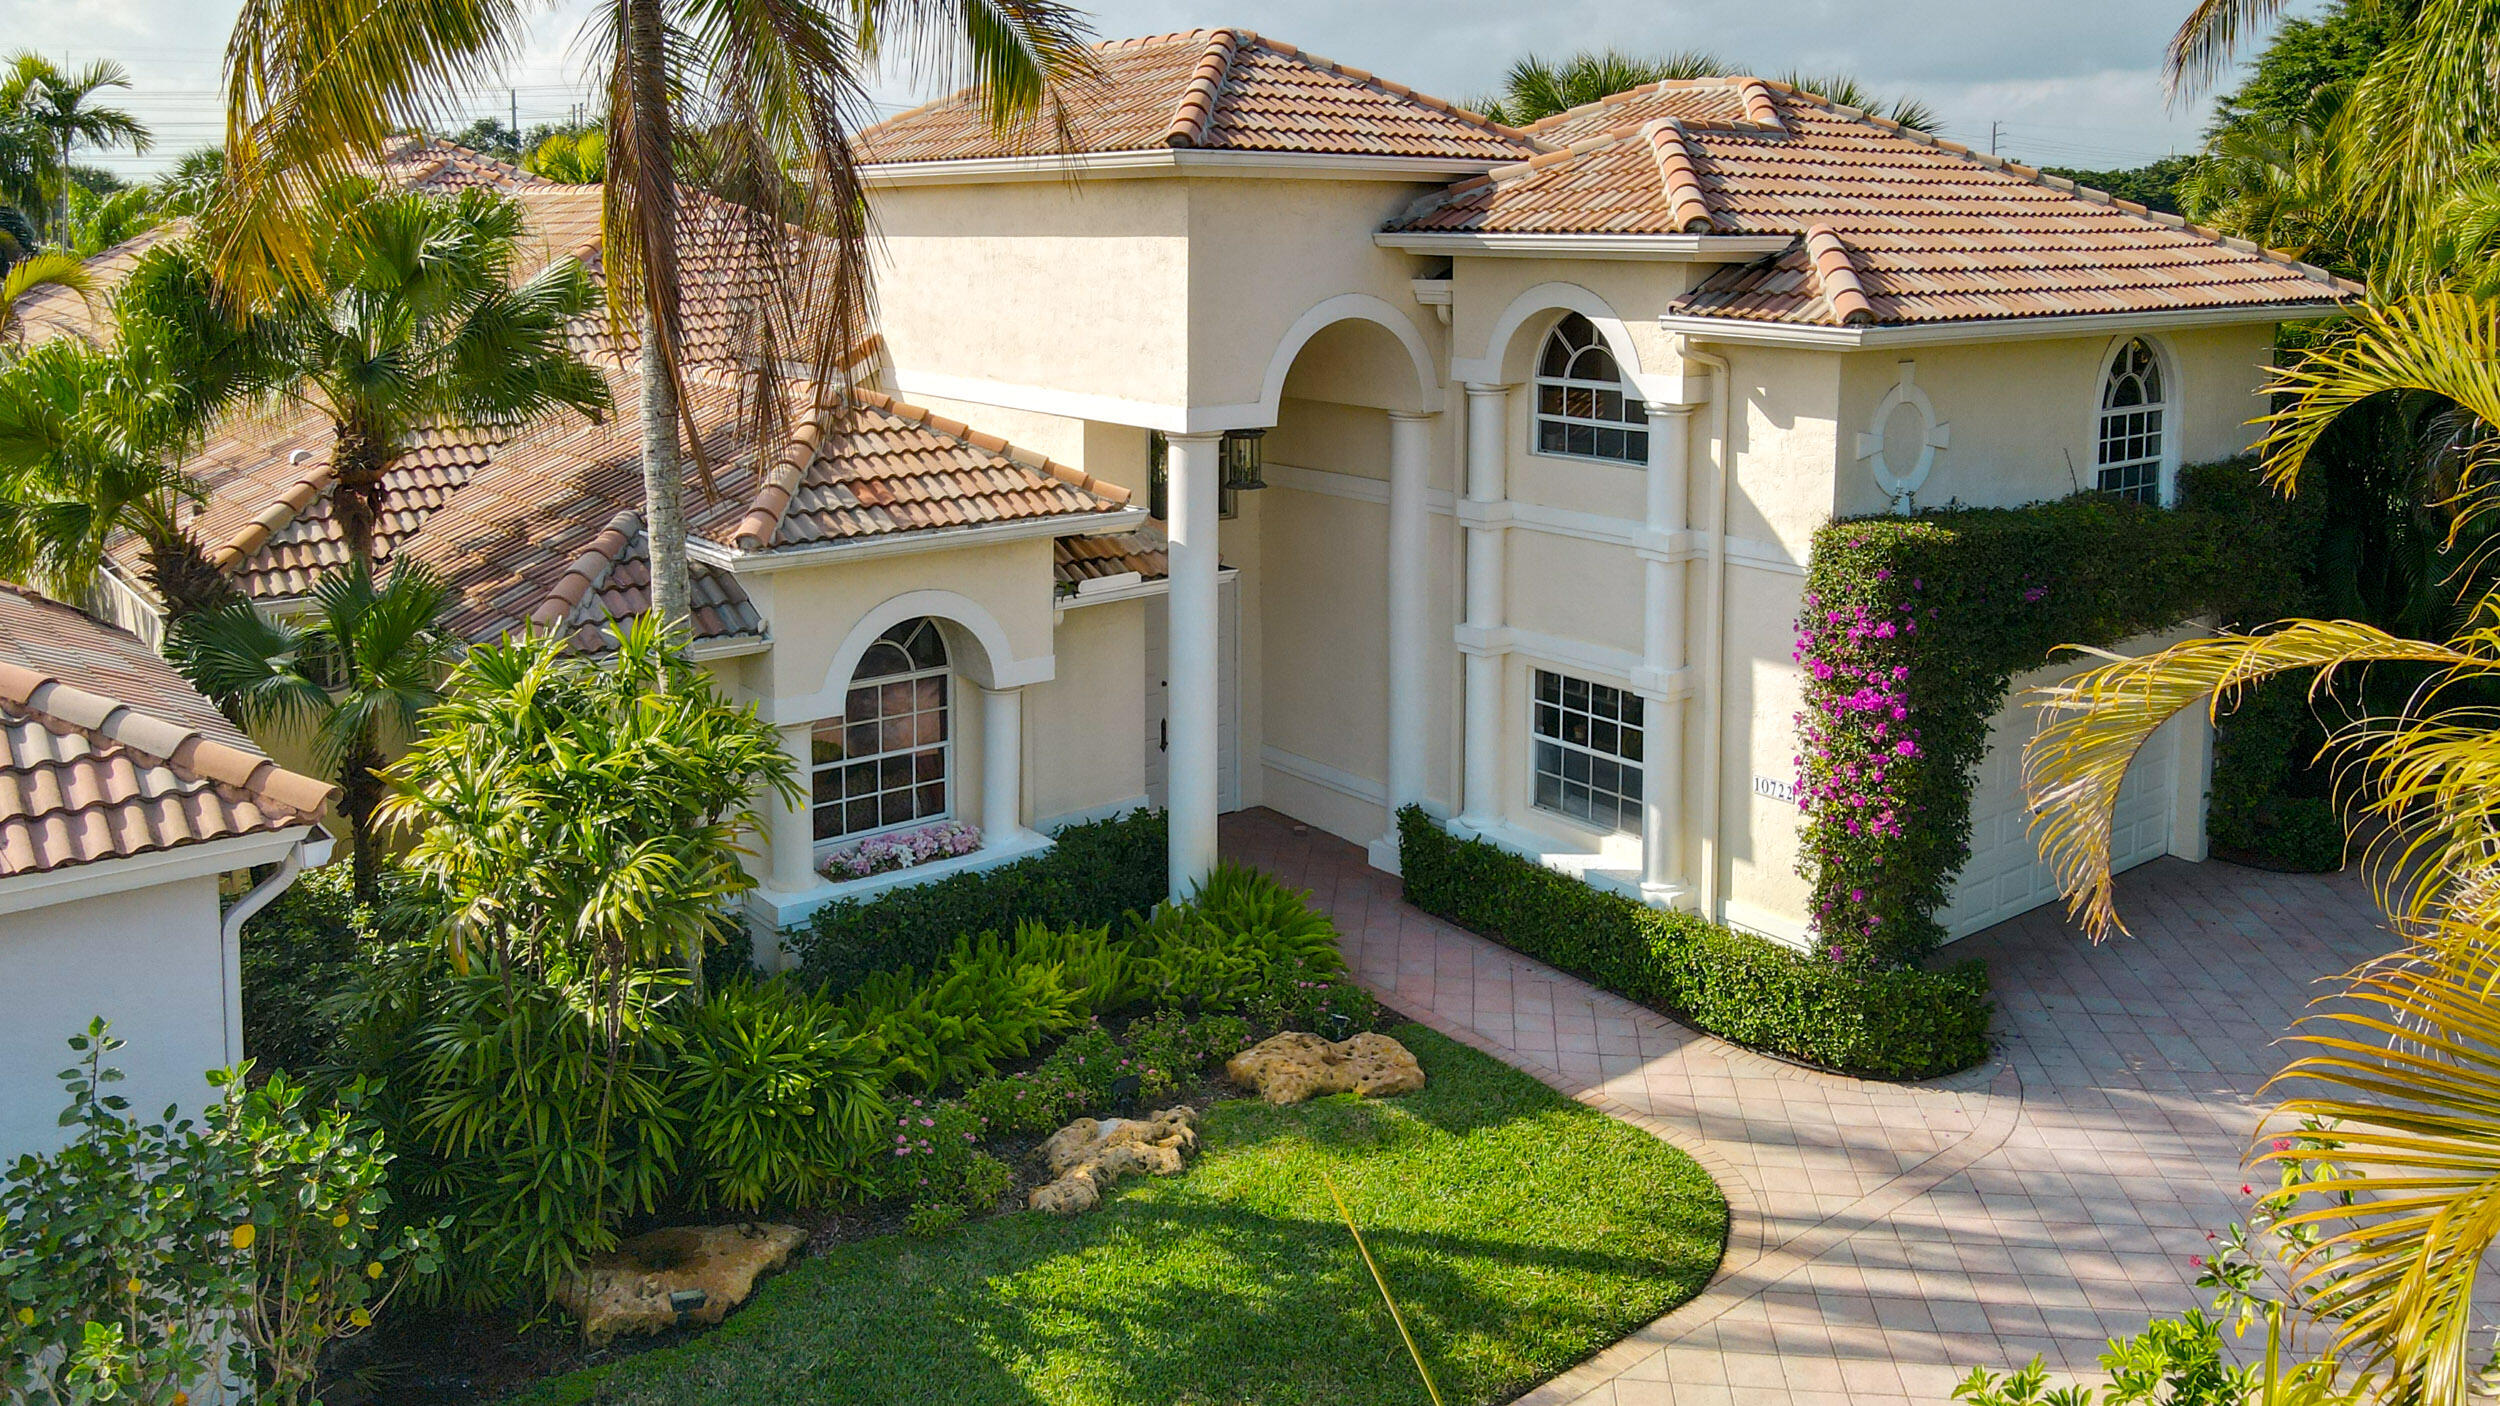 Home for sale in Wycliffe - Greenbriar Lake Worth Florida